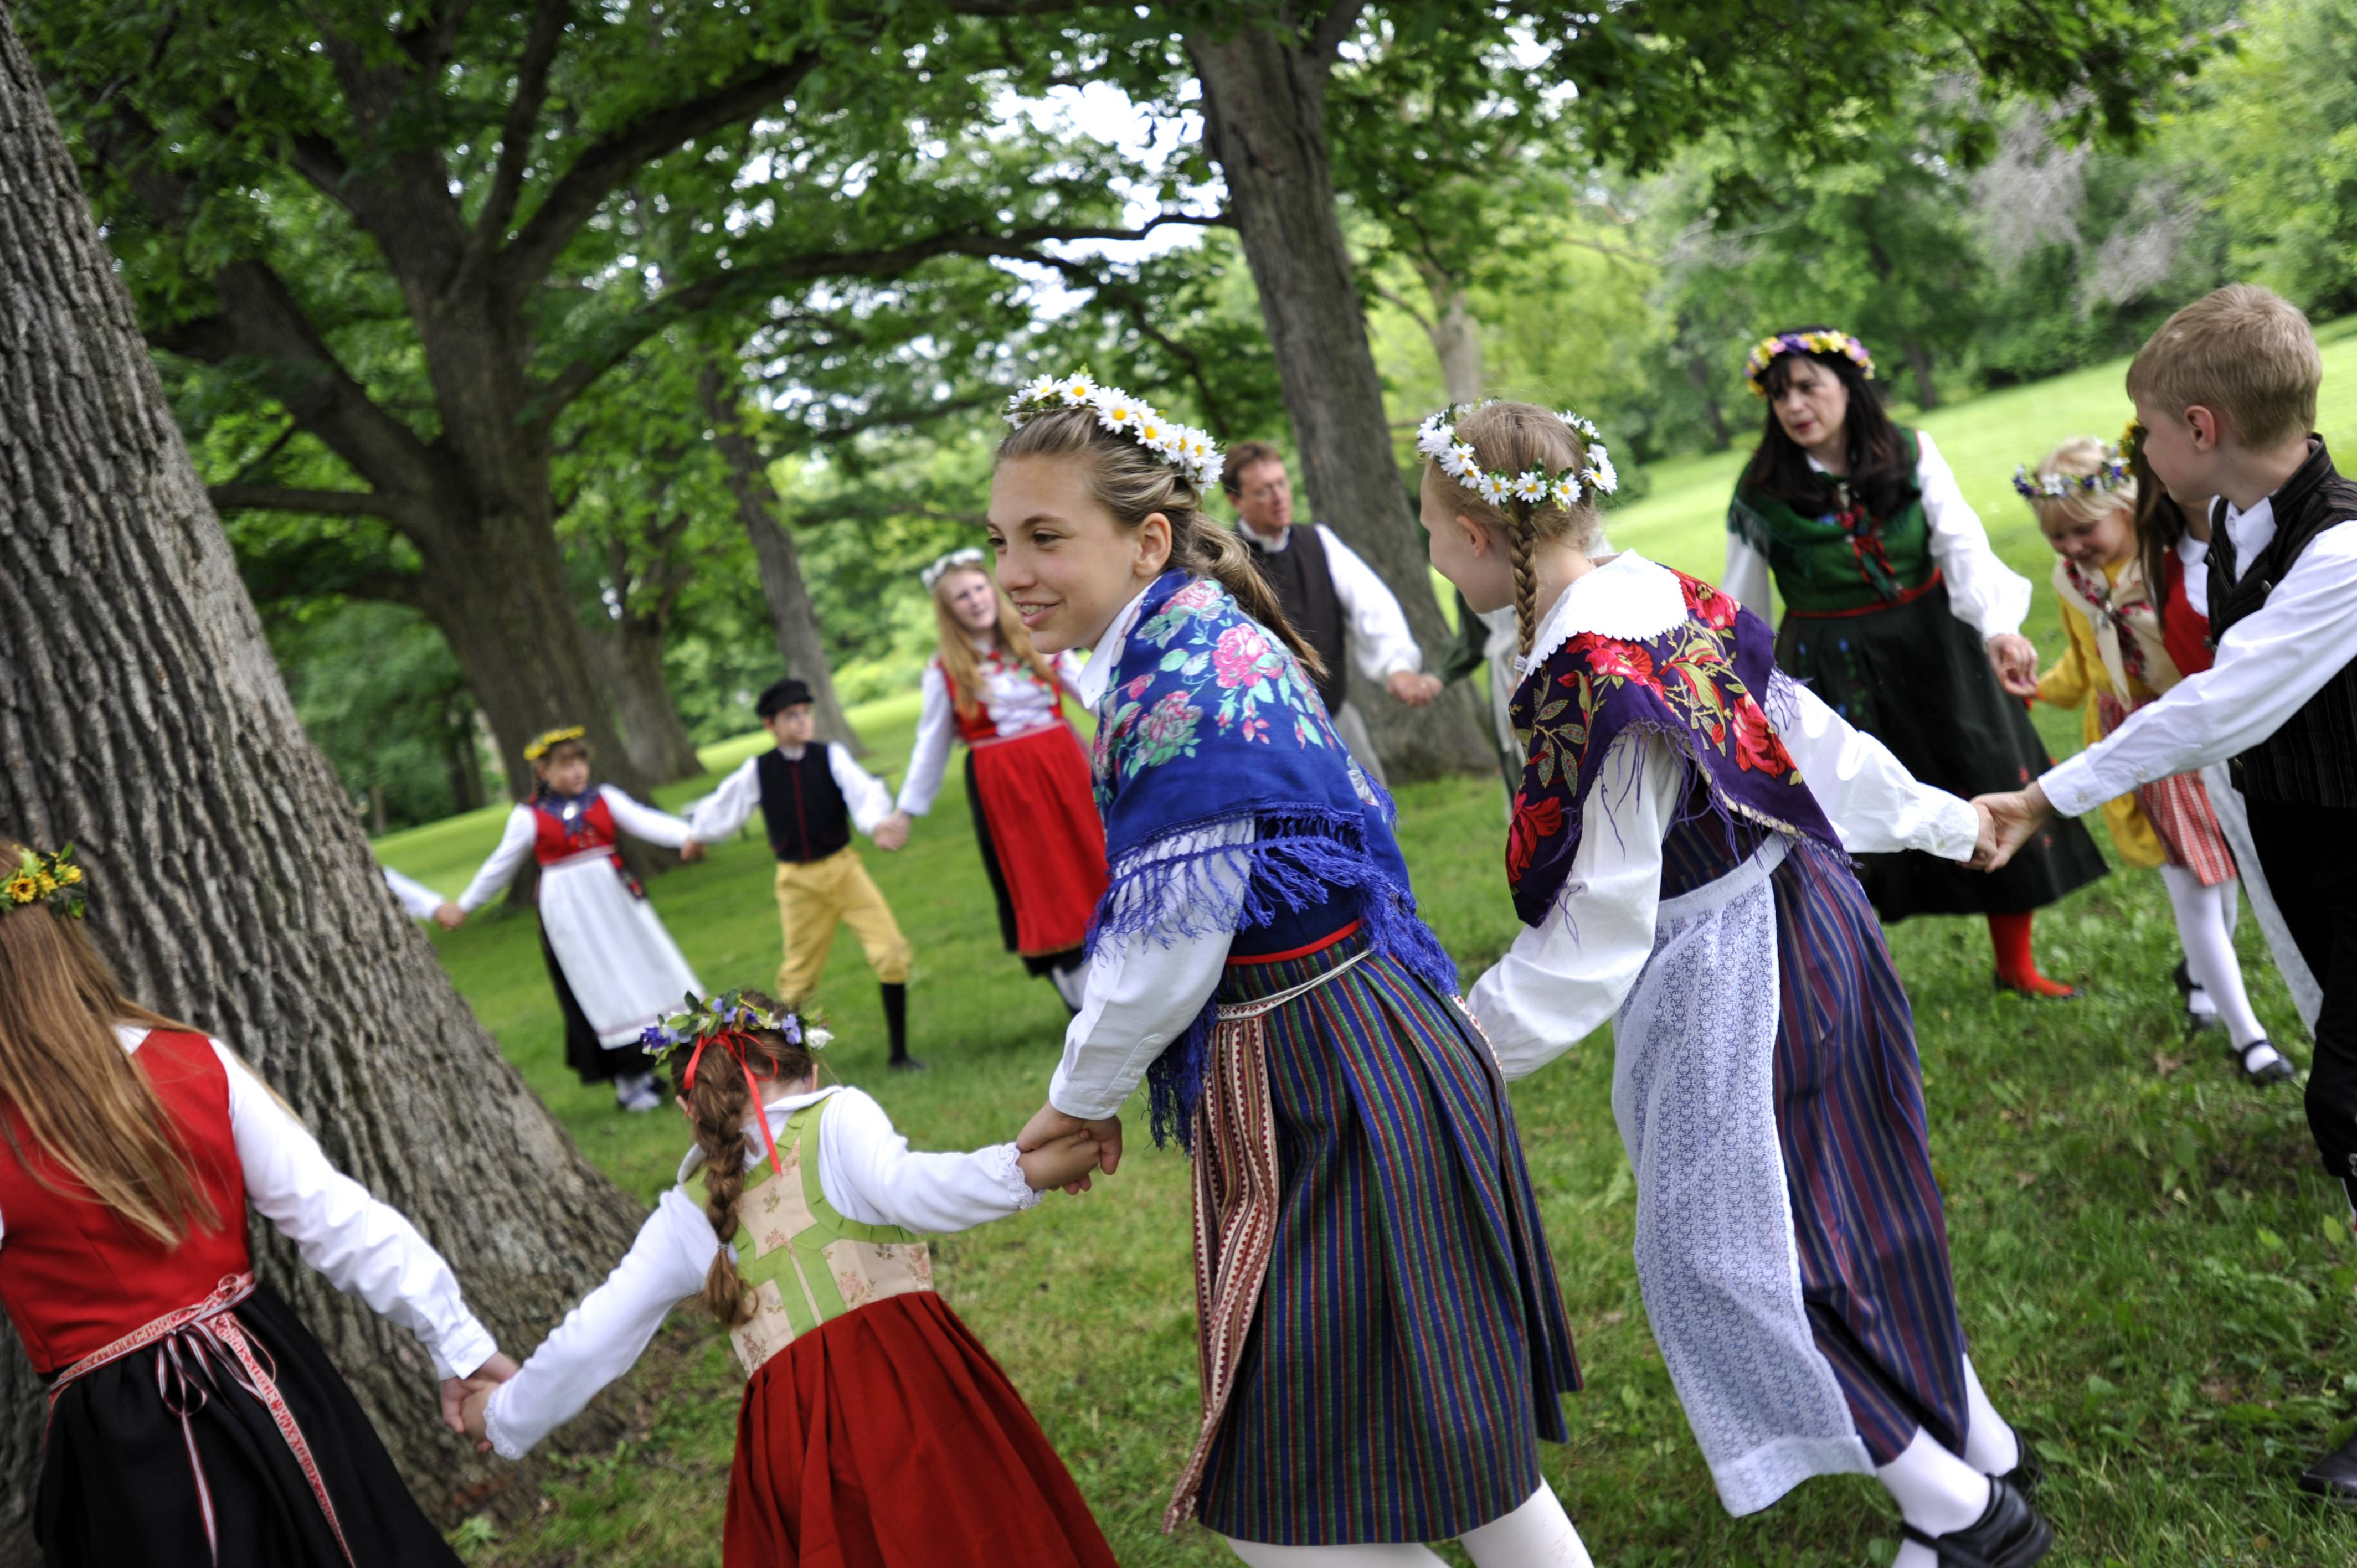 Sydney Poss, 11, of North Aurora, dances around a tree Sunday with other members of the Swedish American Children's Choir during the Maypole dancing at the 104th annual Swedish Day Midsommar Festival in Geneva.